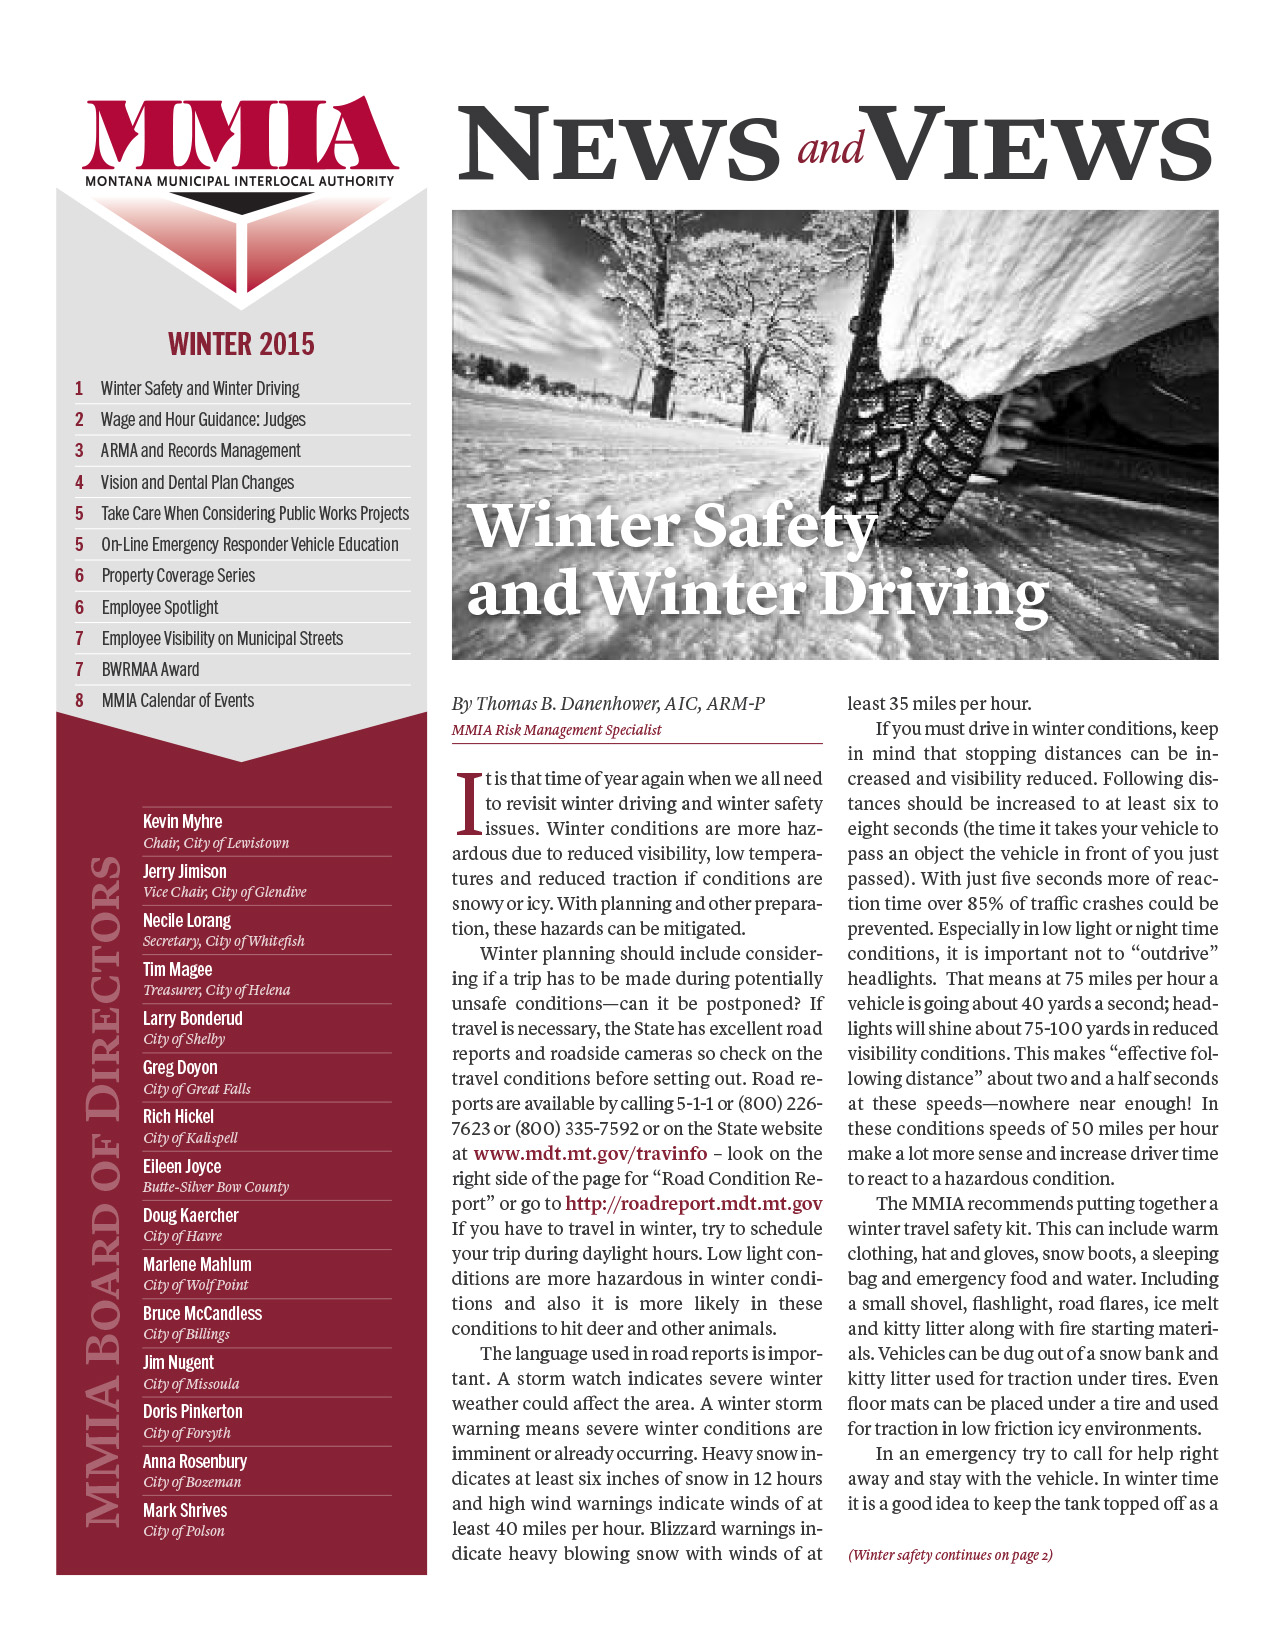 MMIA News & Views - Winter 2015